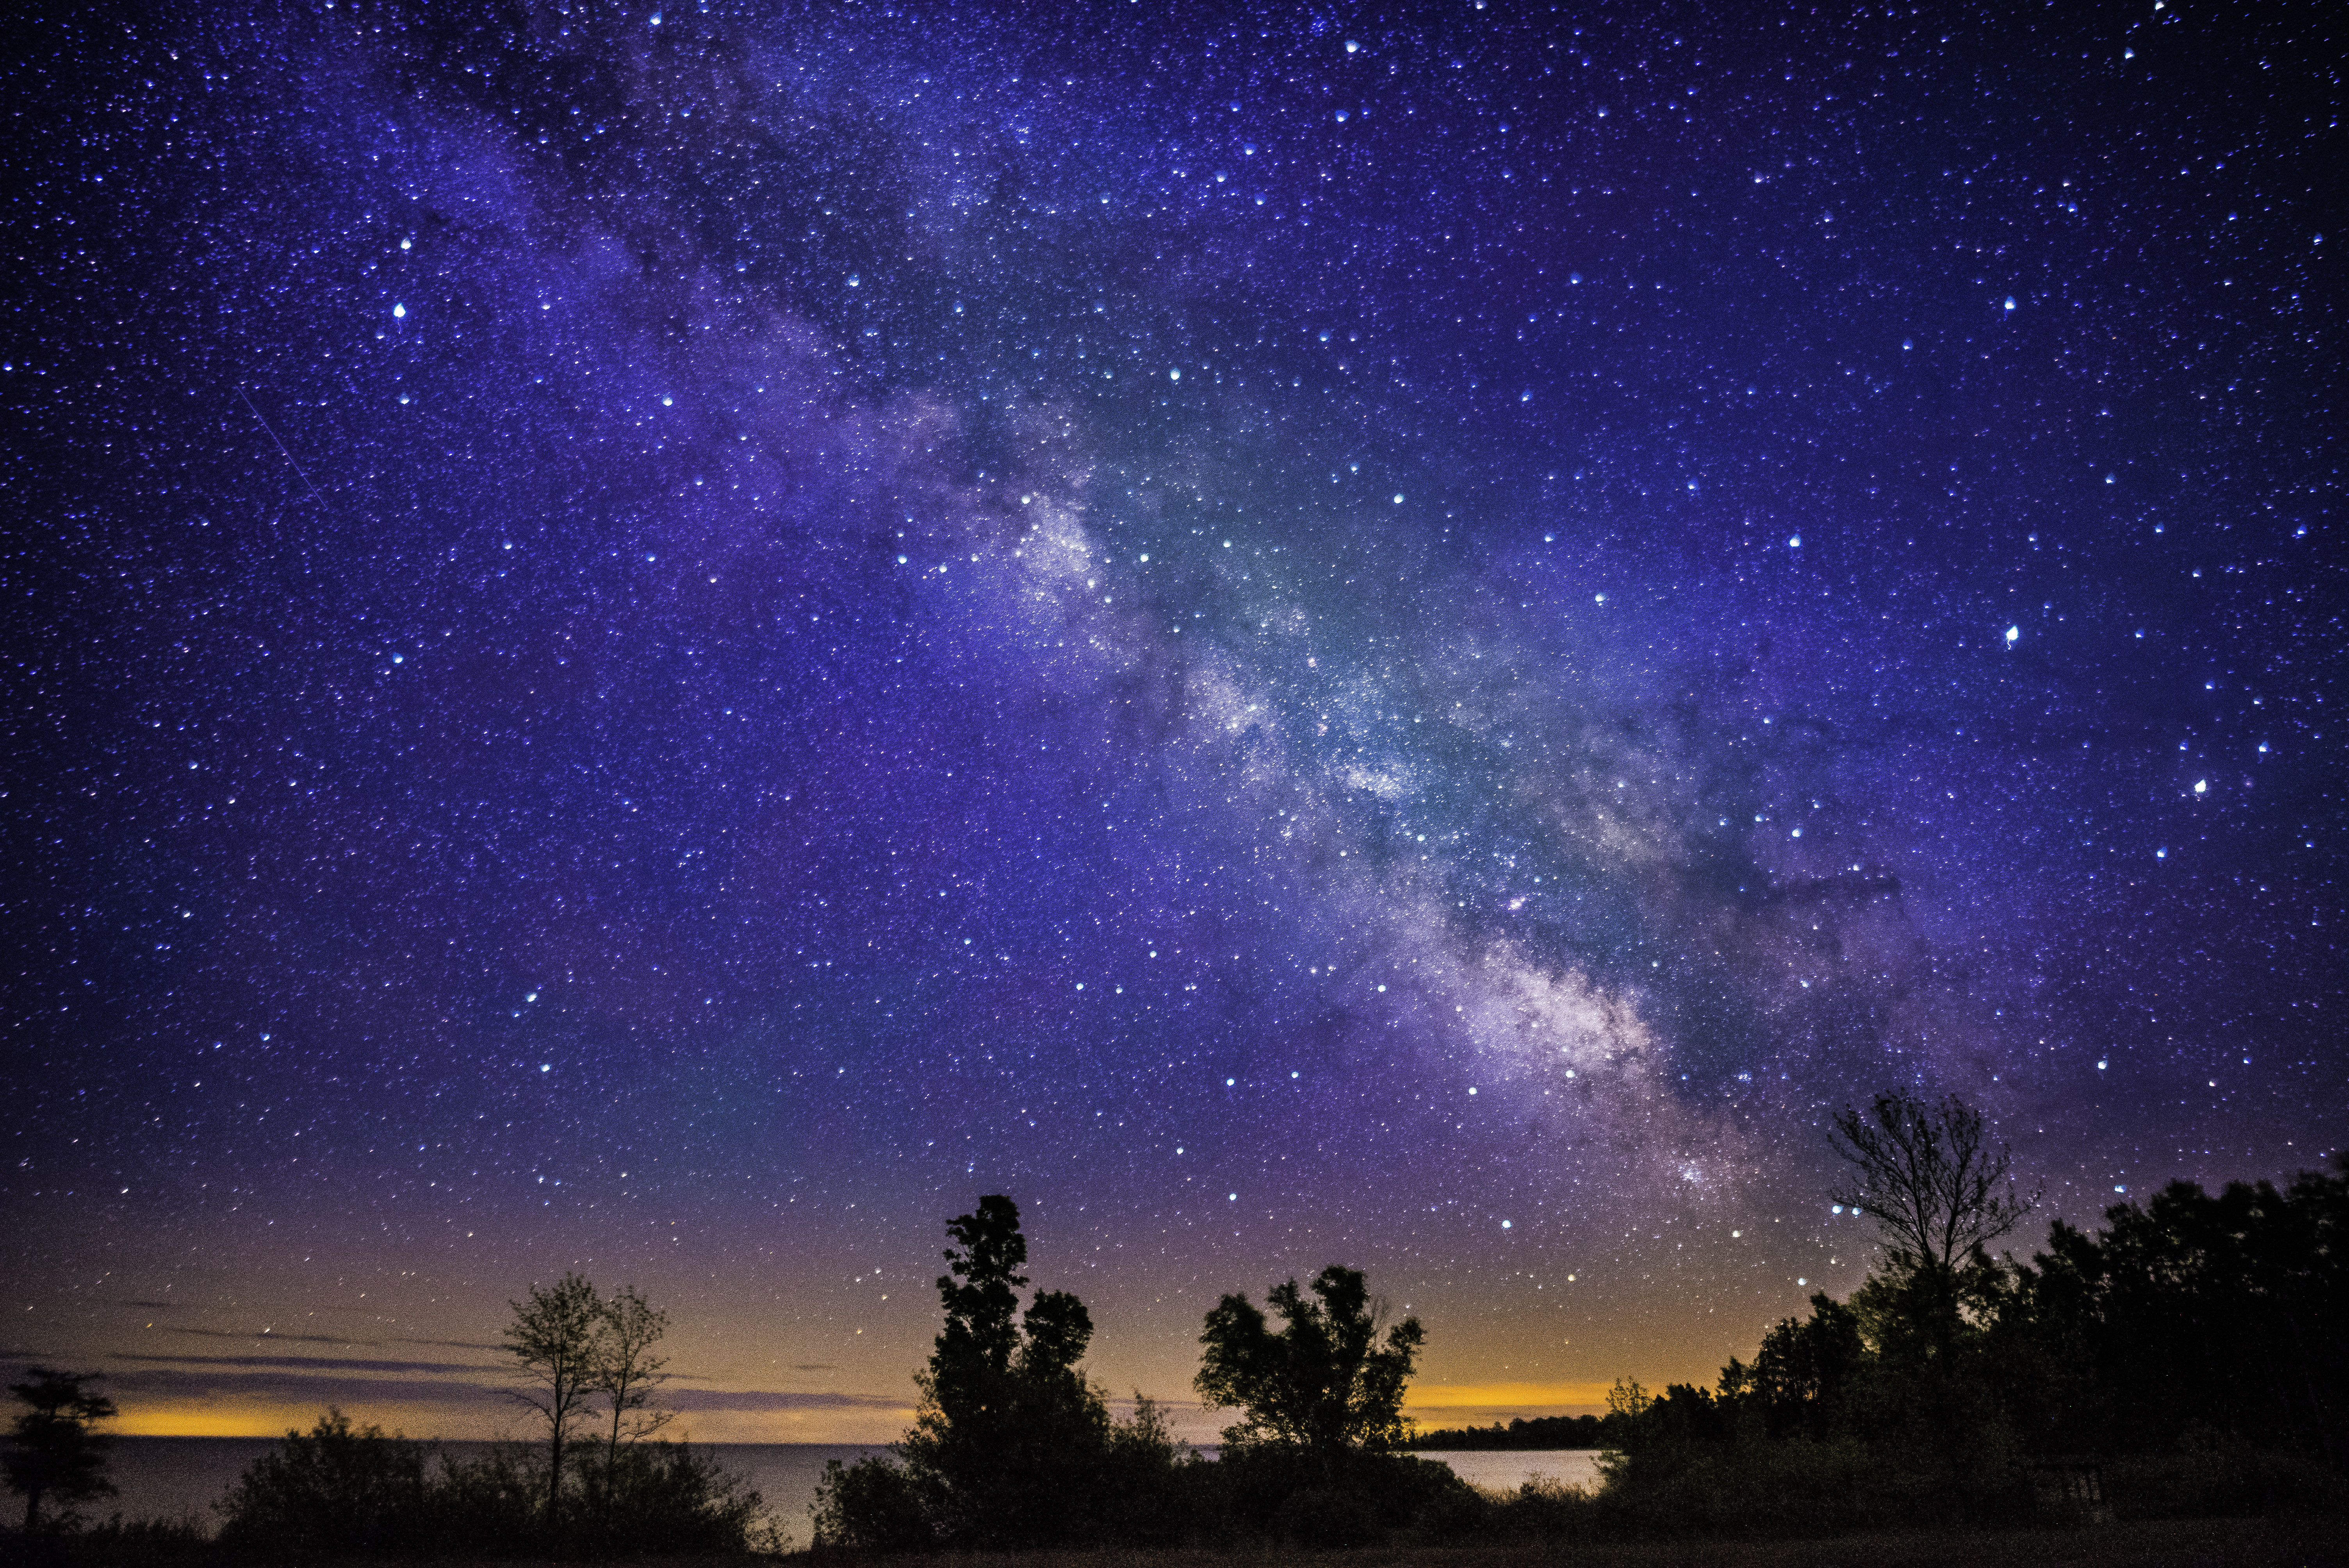 Landscape at night and the Milky Way image - Free stock photo ... on nature photography, natural landscape, marine art, landscape ecology, landscape planning, cultural landscape, garden design, landscape photography, landscape art, landscape design, physical geography,